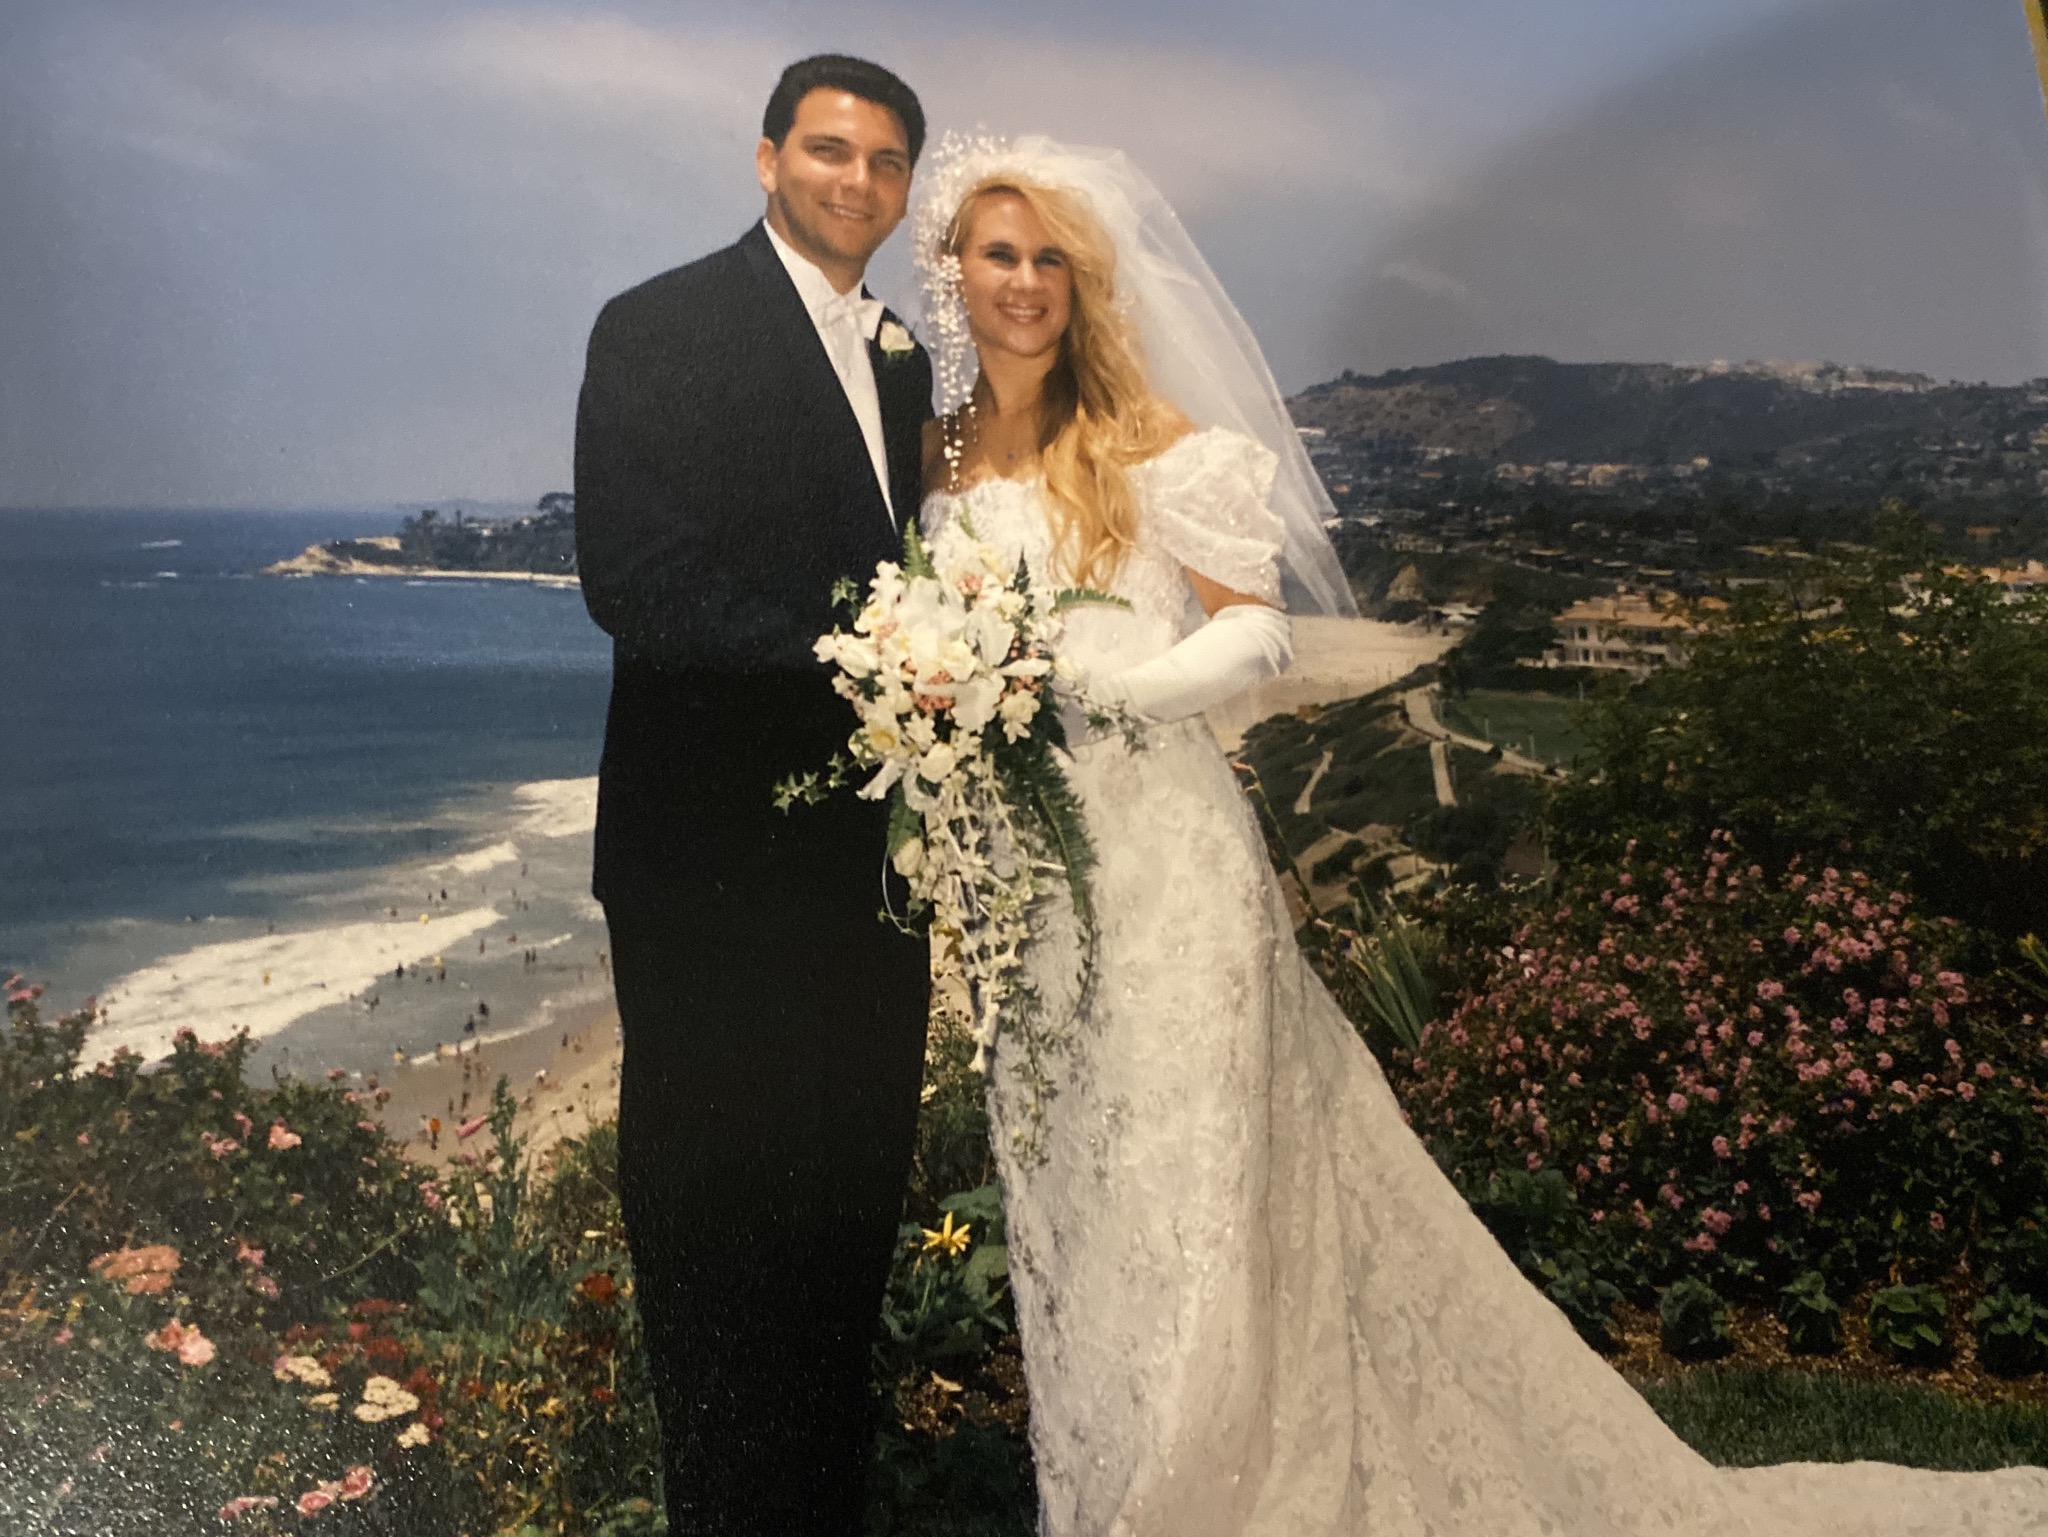 Photo of the newlyweds on a cliff overlooking the ocean